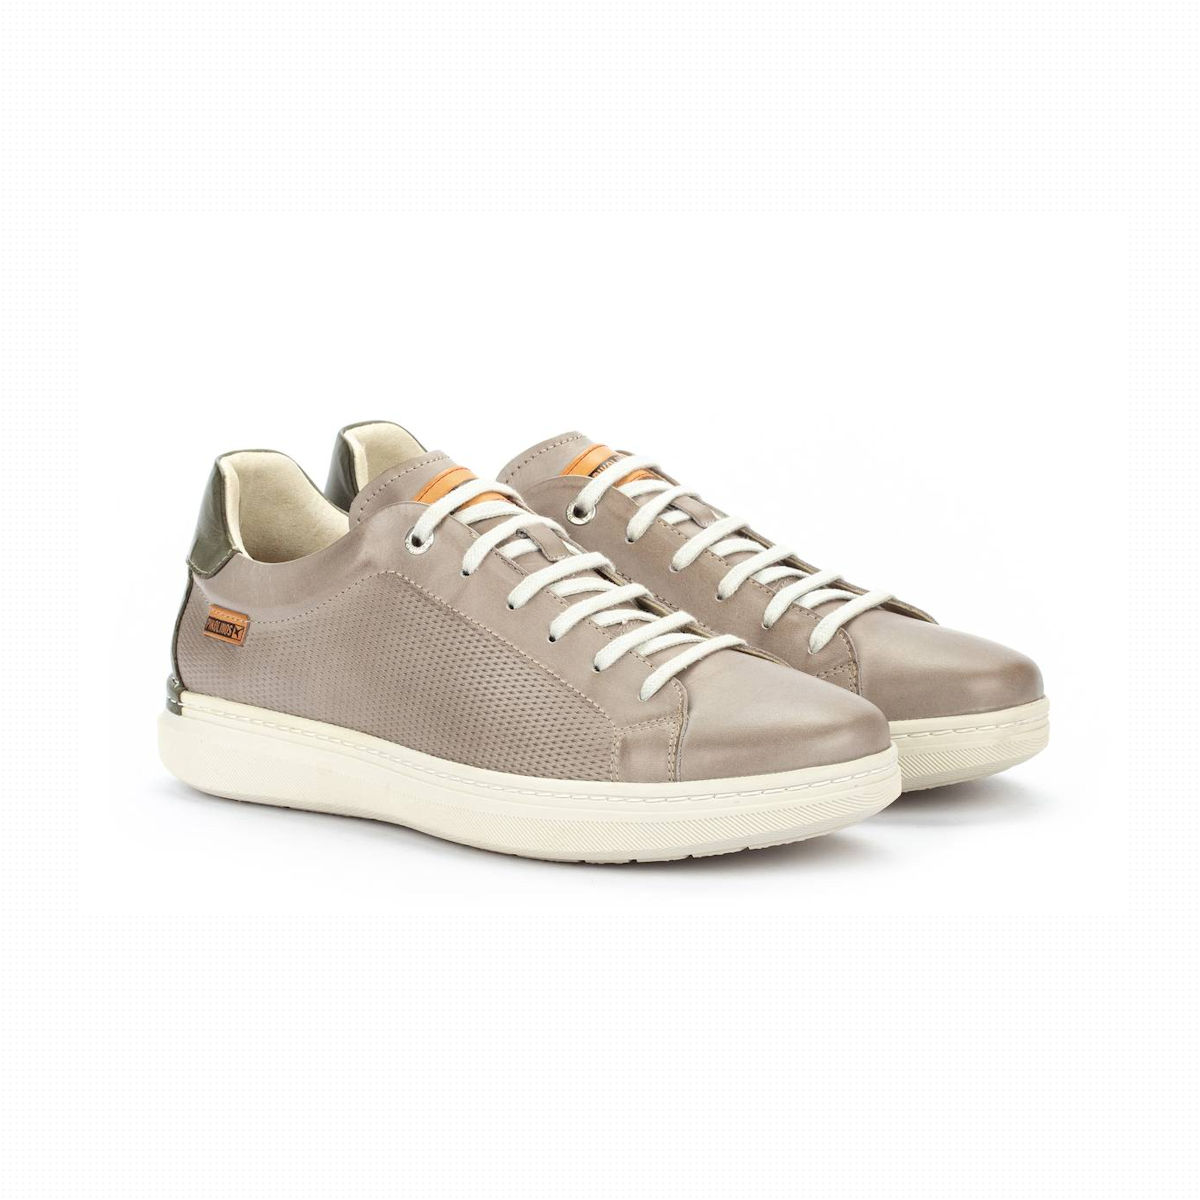 The Pikolinos Begur M7P Mens Sneeker in Slate Grey